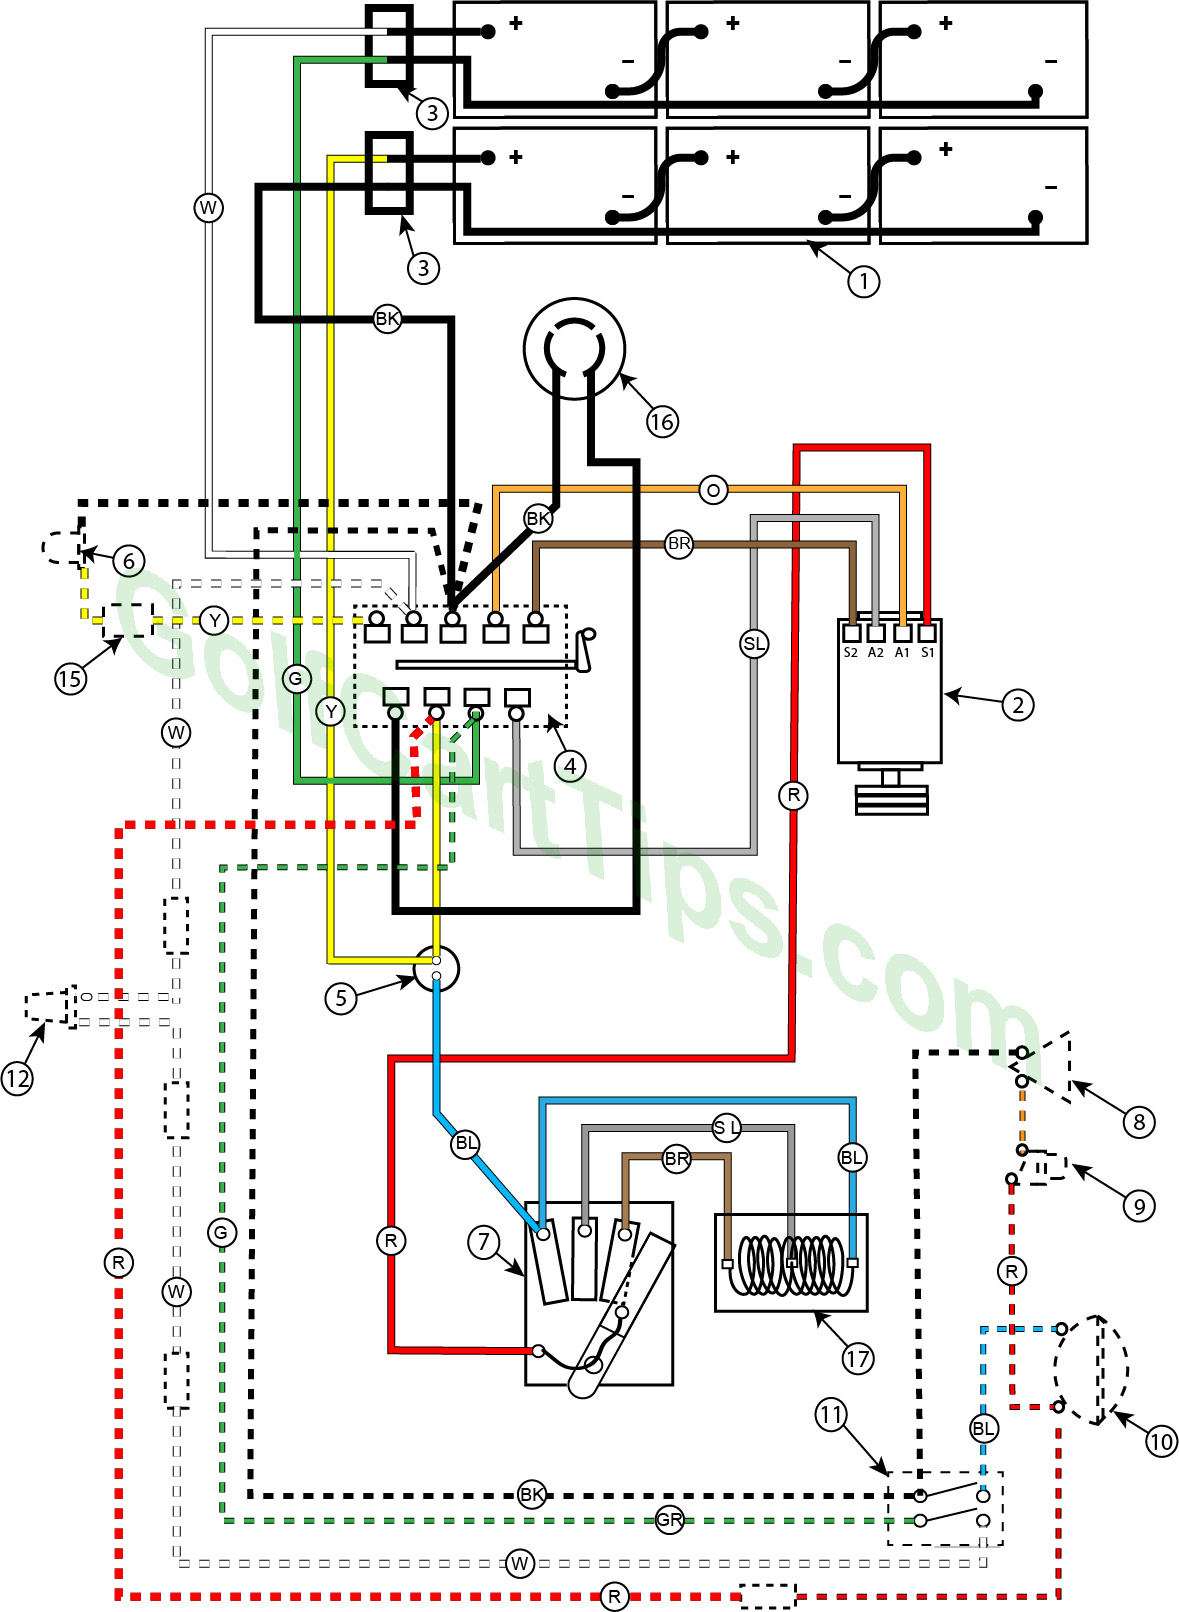 cushman 36 volt golf cart wiring diagram 24 volt golf cart wiring diagram